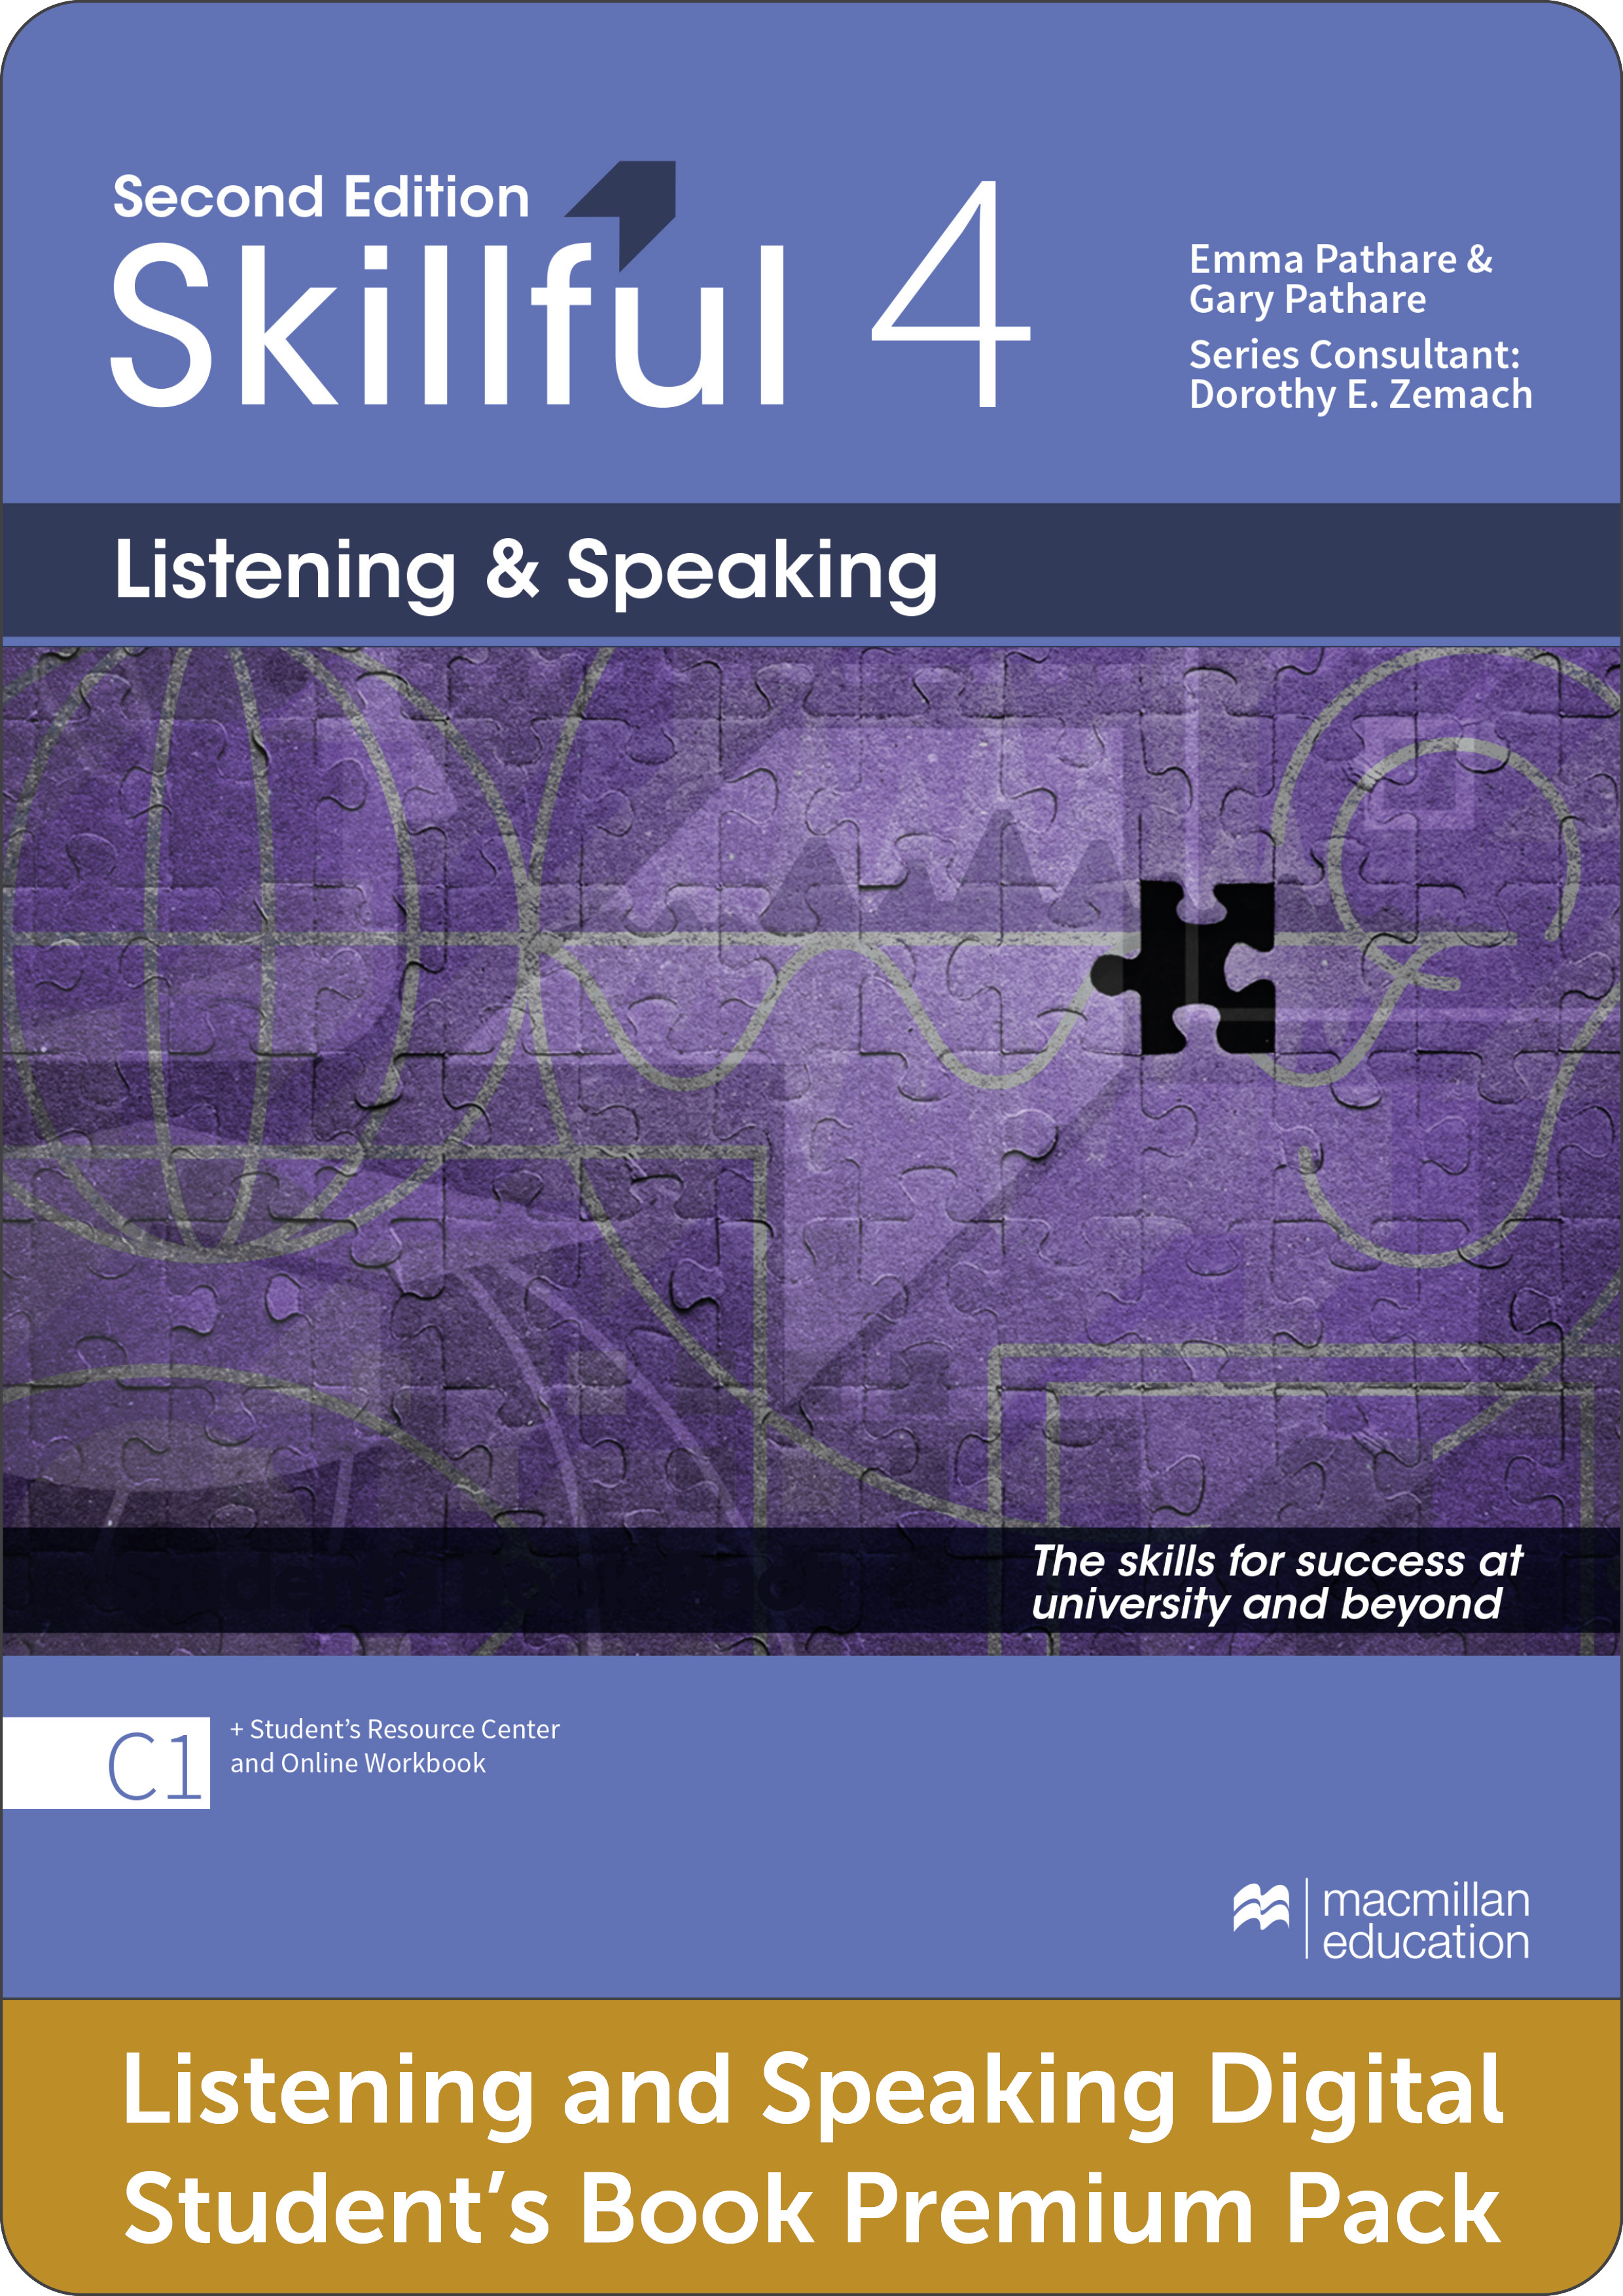 Skillful Second Edition Level 4 Listening and Speaking Premium Digital Student's Book Pack